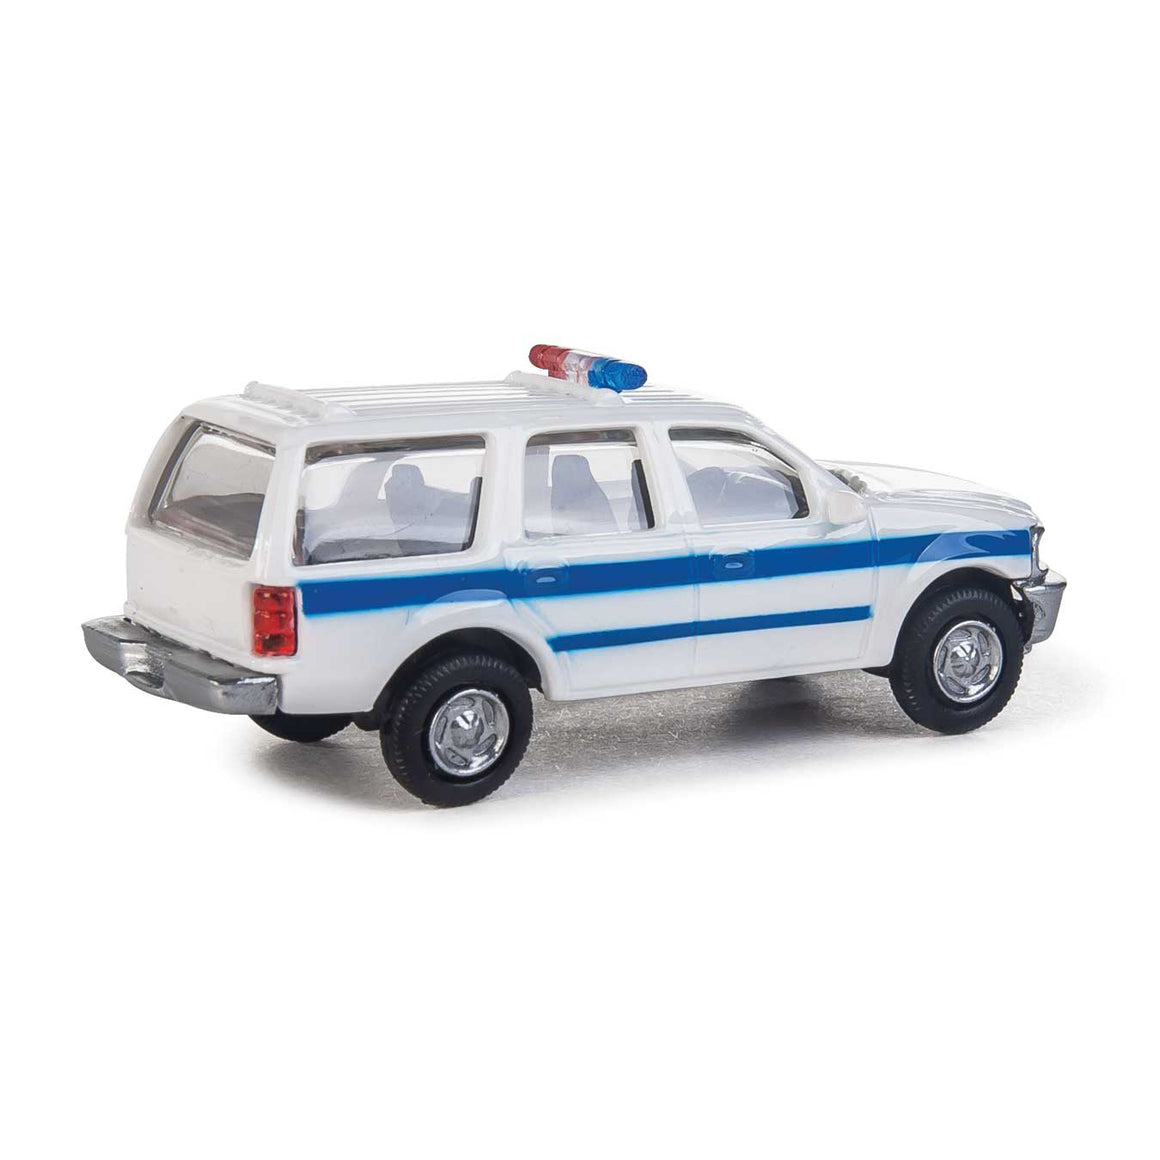 HO Scale: Ford® Expedition Service Vehicle - White & Blue